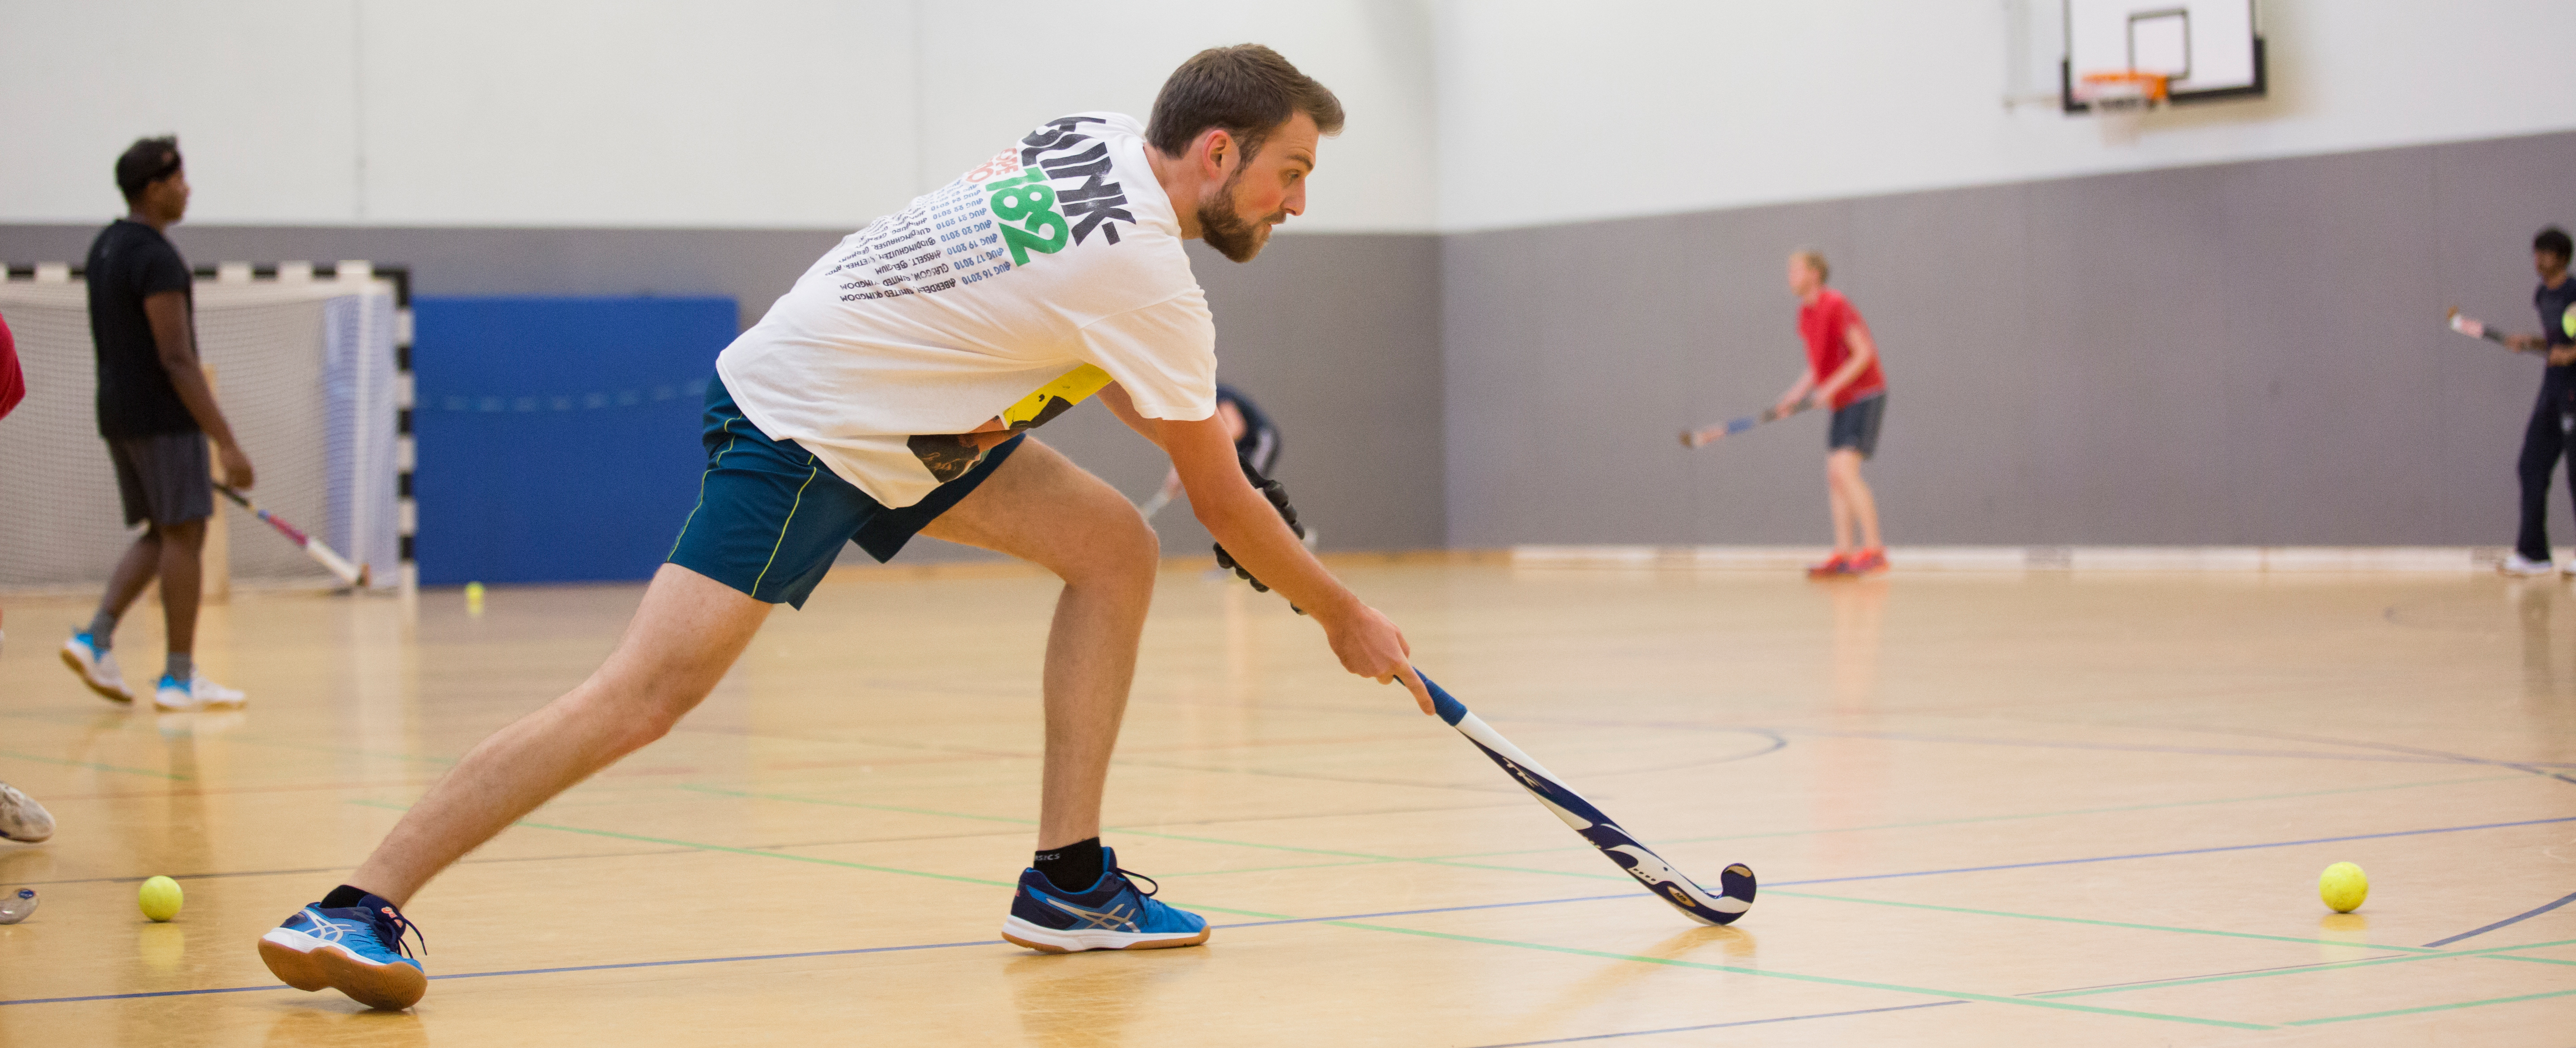 Indoor hockey player